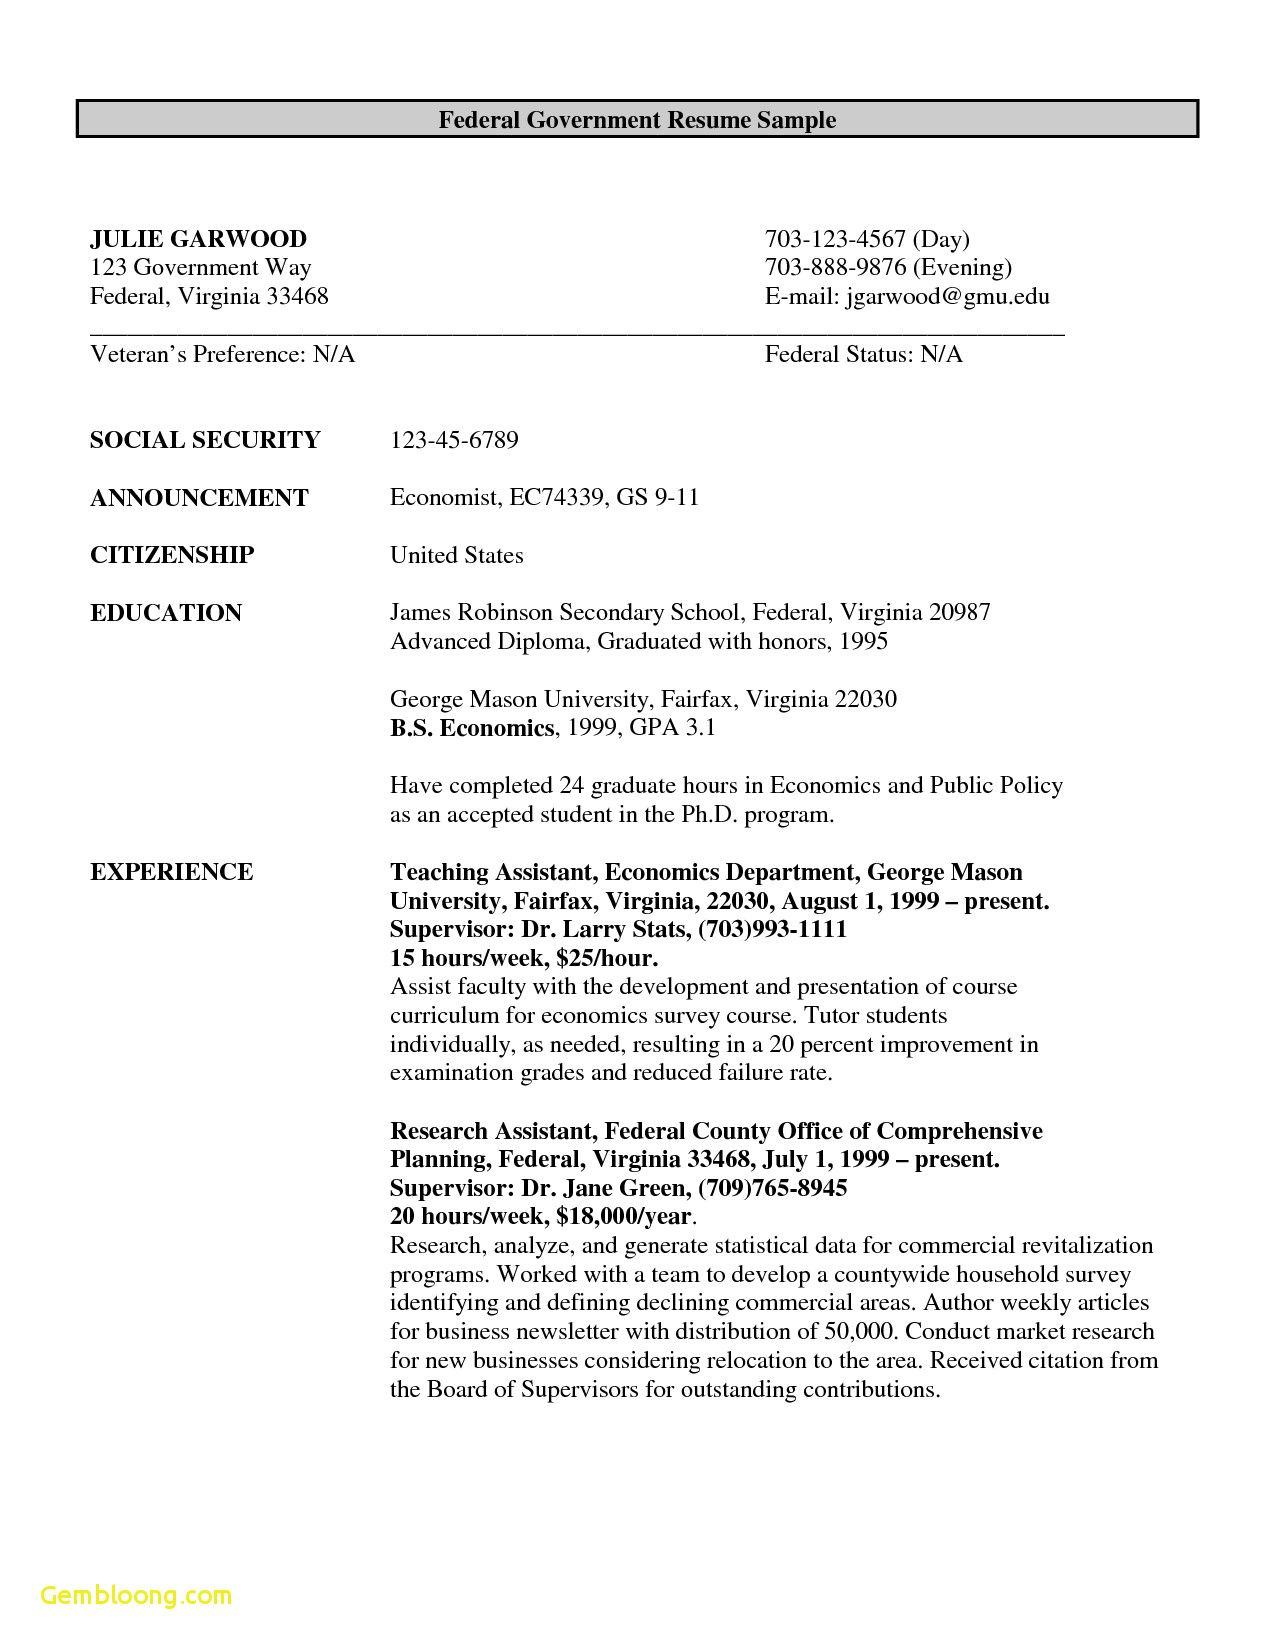 Free Resume Templates Government freeresumetemplates